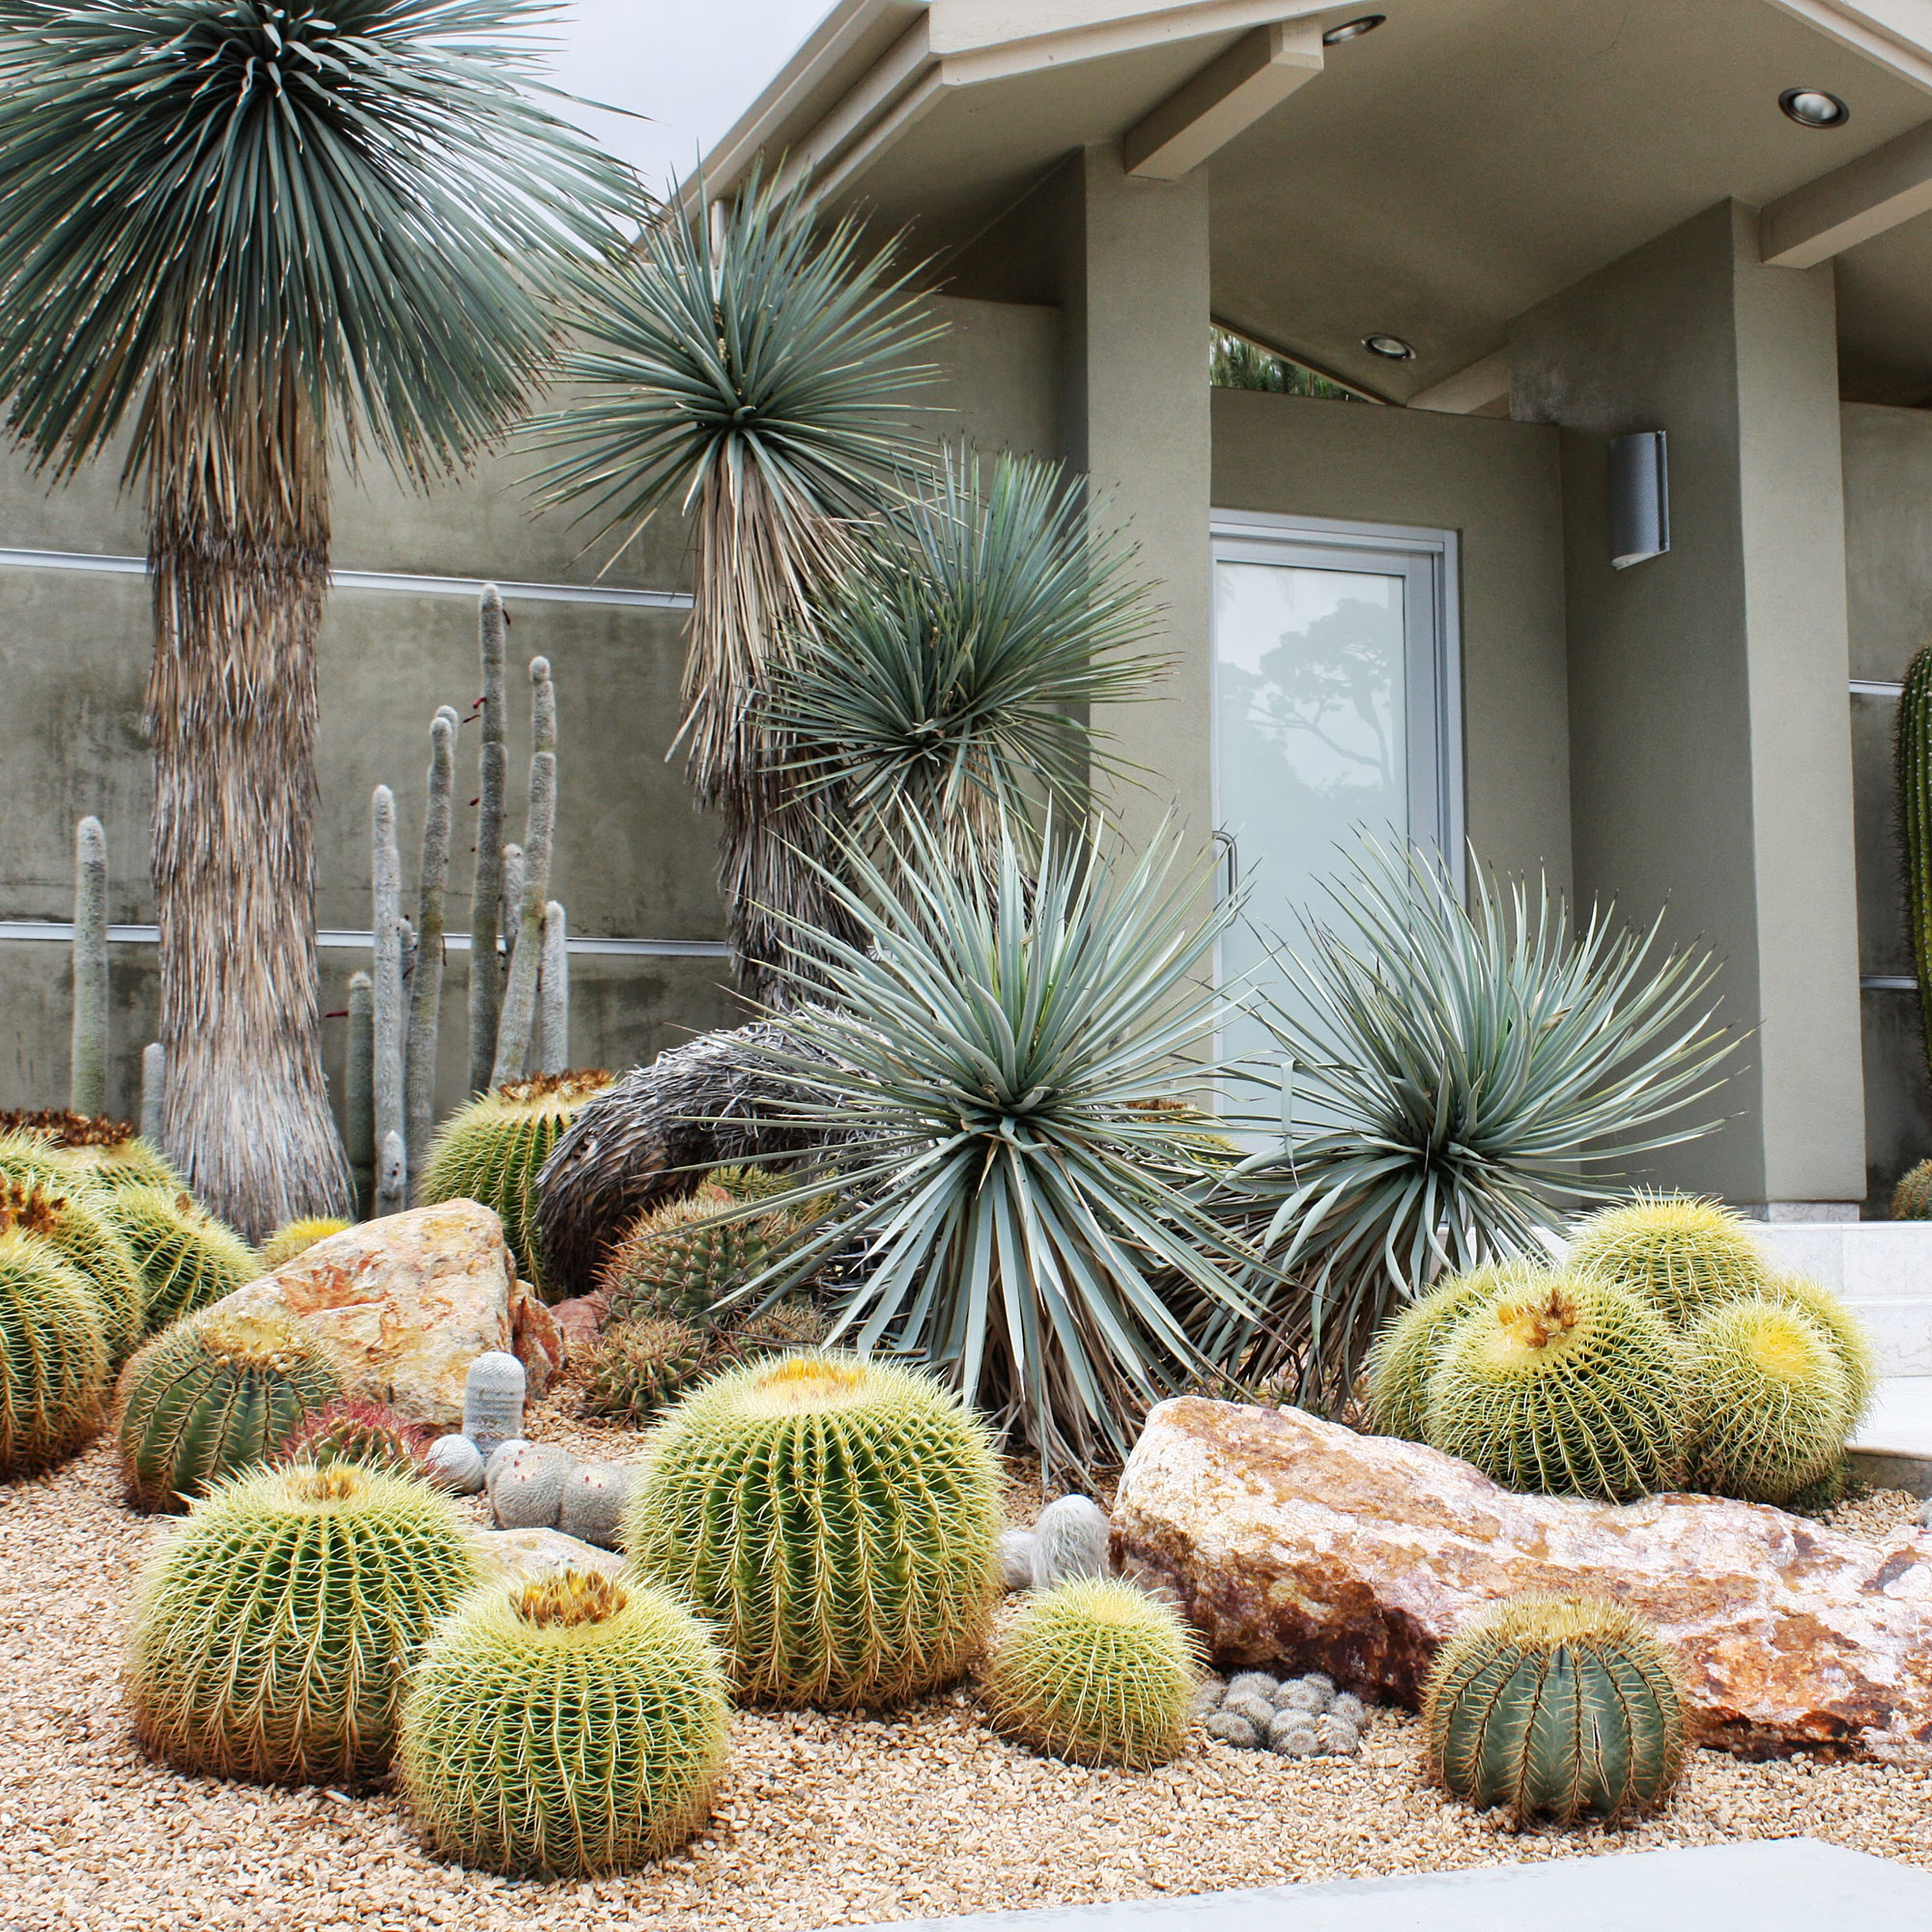 Top 70 Best Desert Landscaping Ideas: Design With Cactus